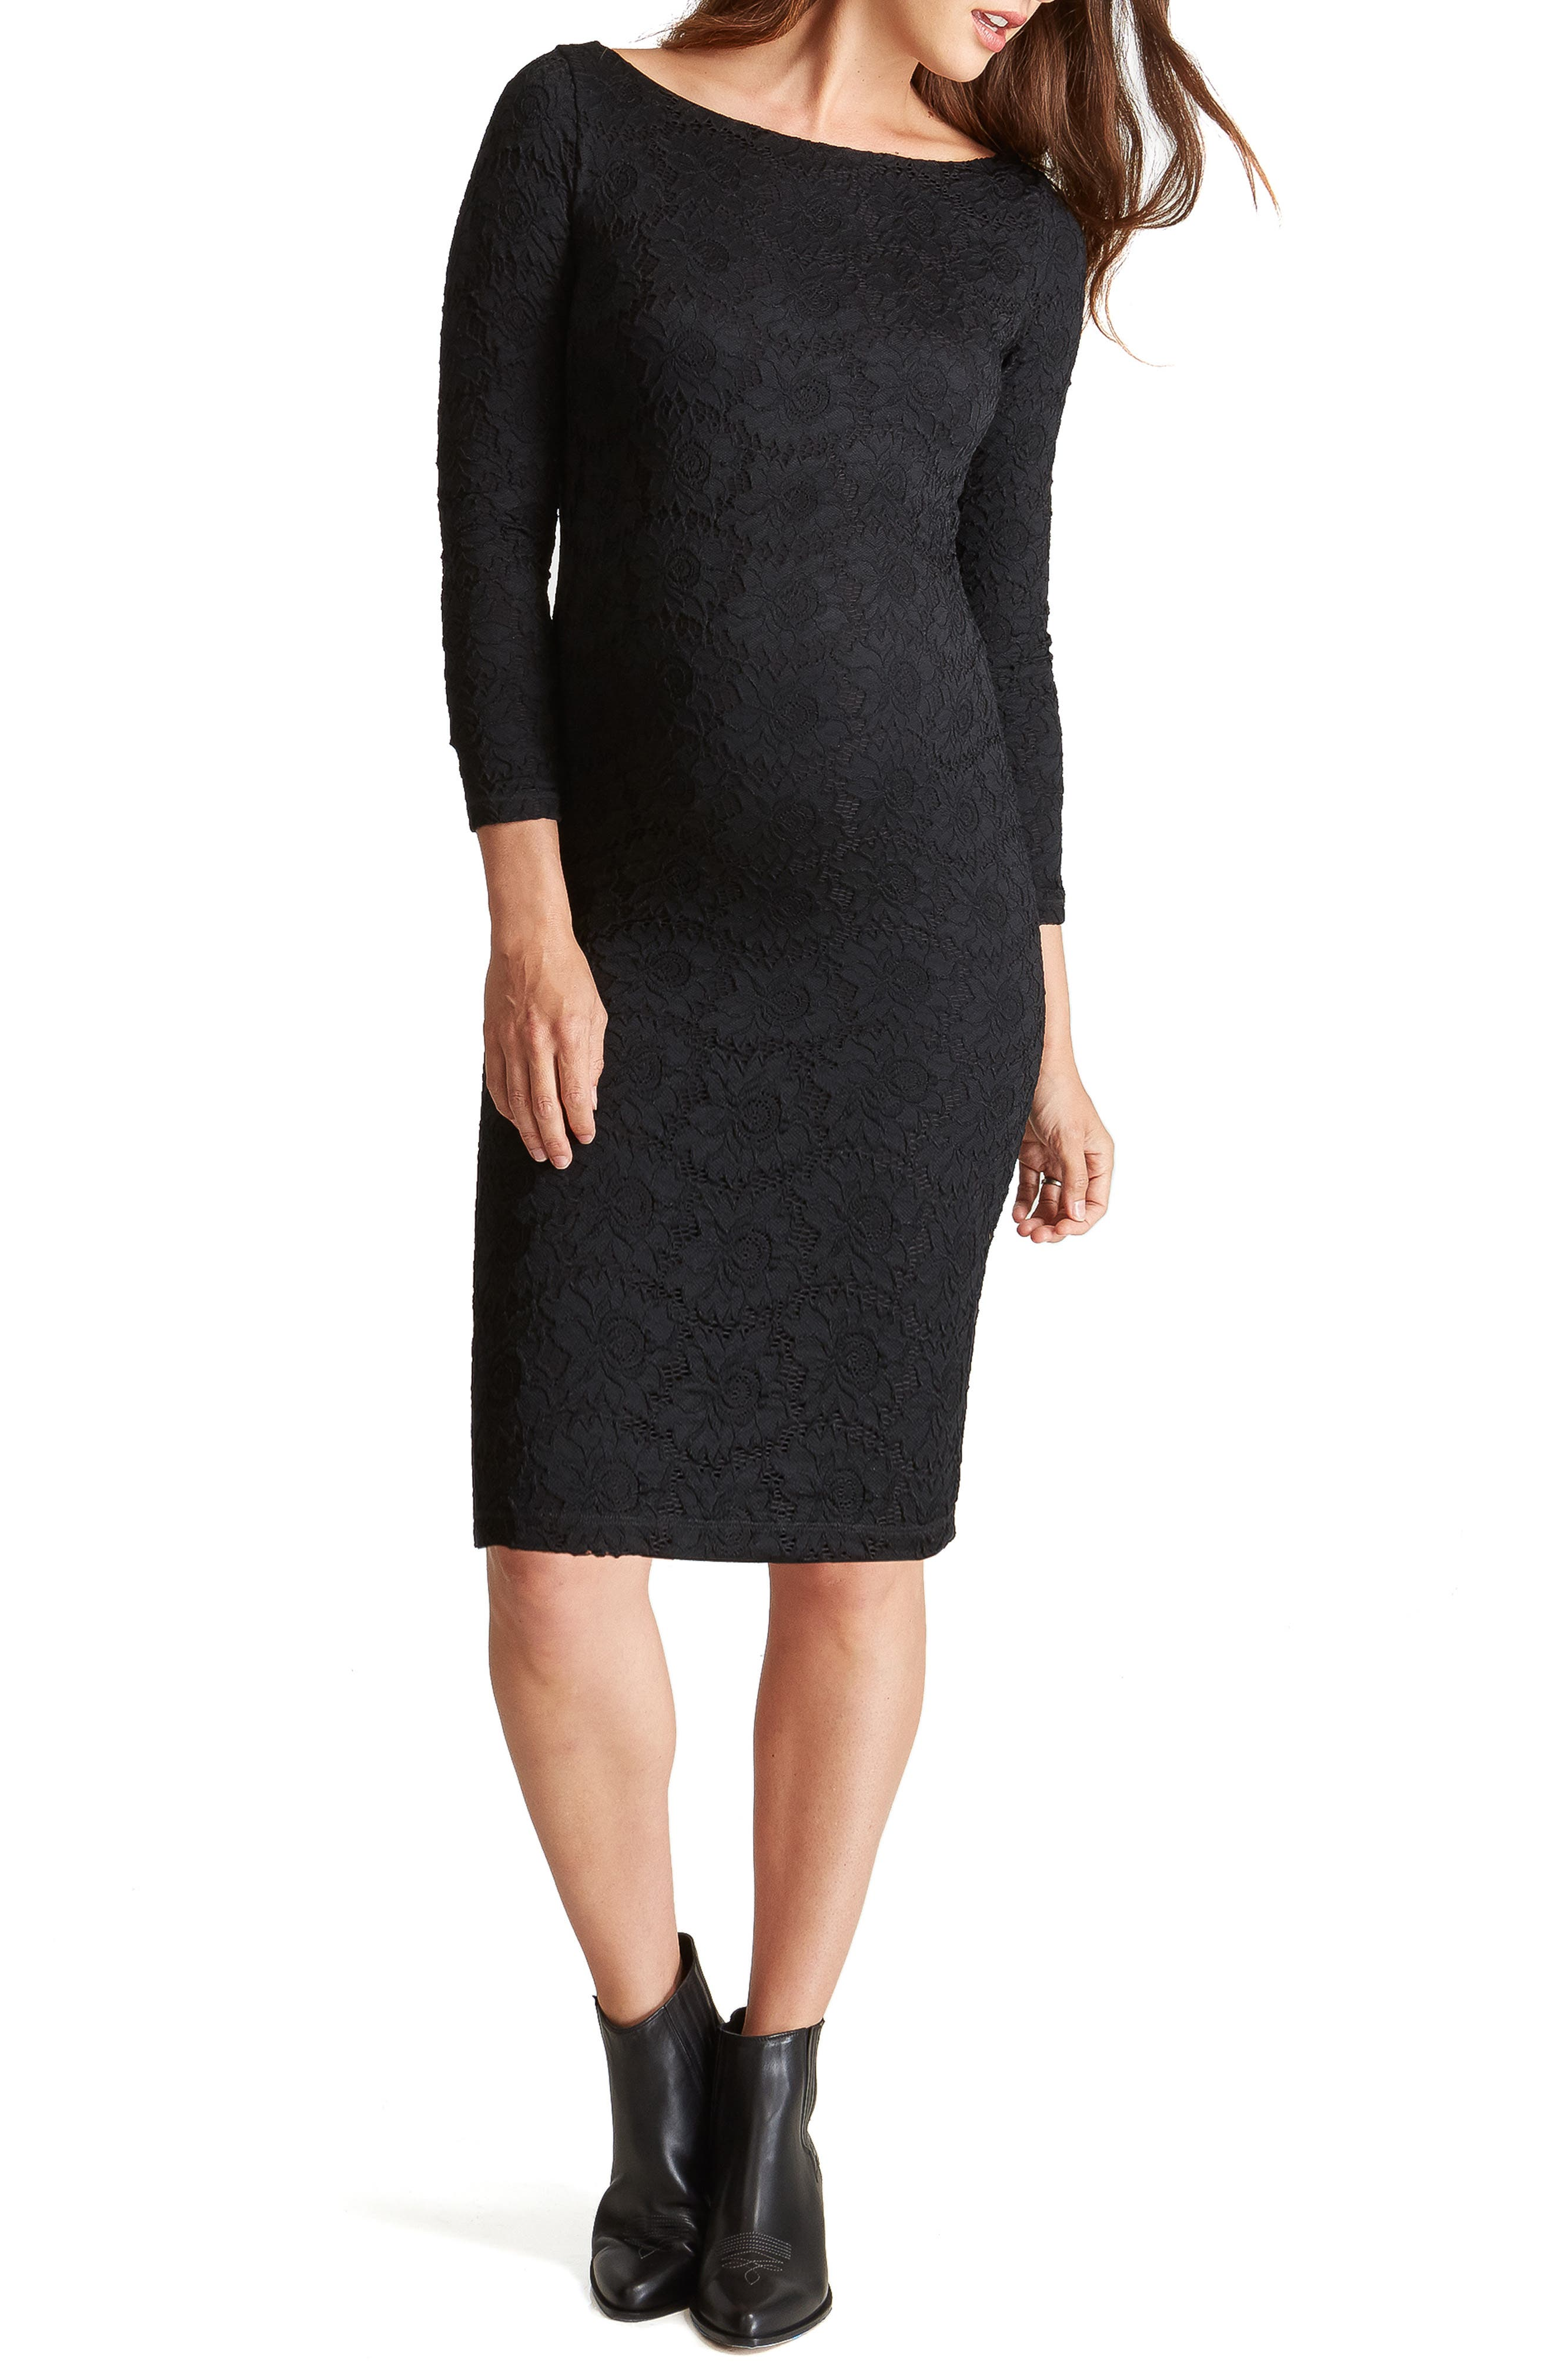 Ingrid & Isabel Floral Lace Body-Con Maternity Dress, Black